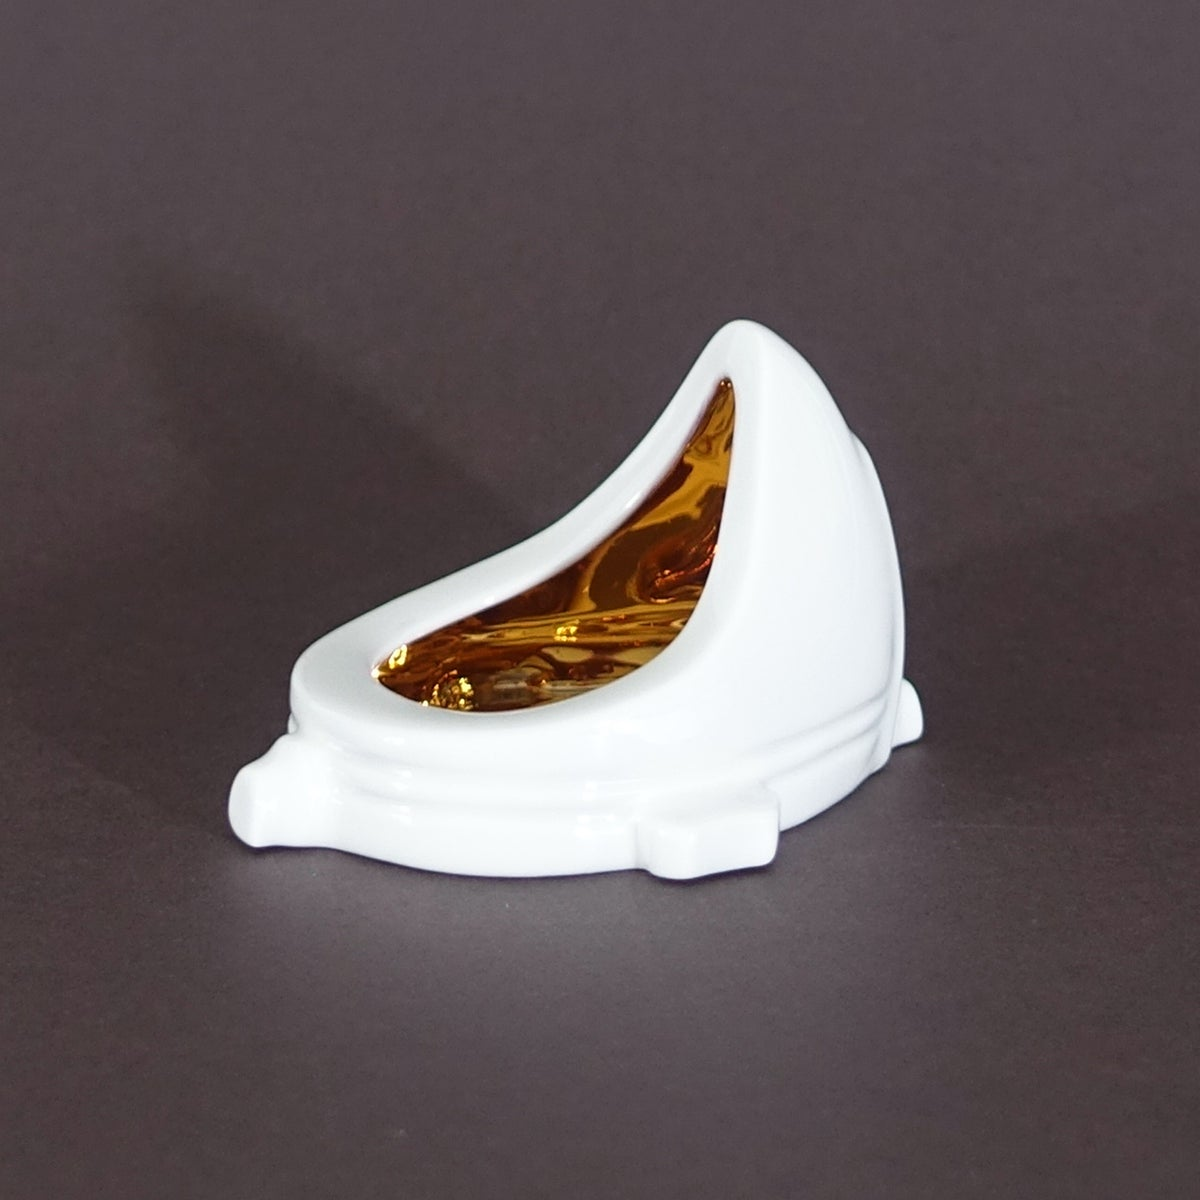 Image of Special Gold Edition Dada Egg Cup -  05